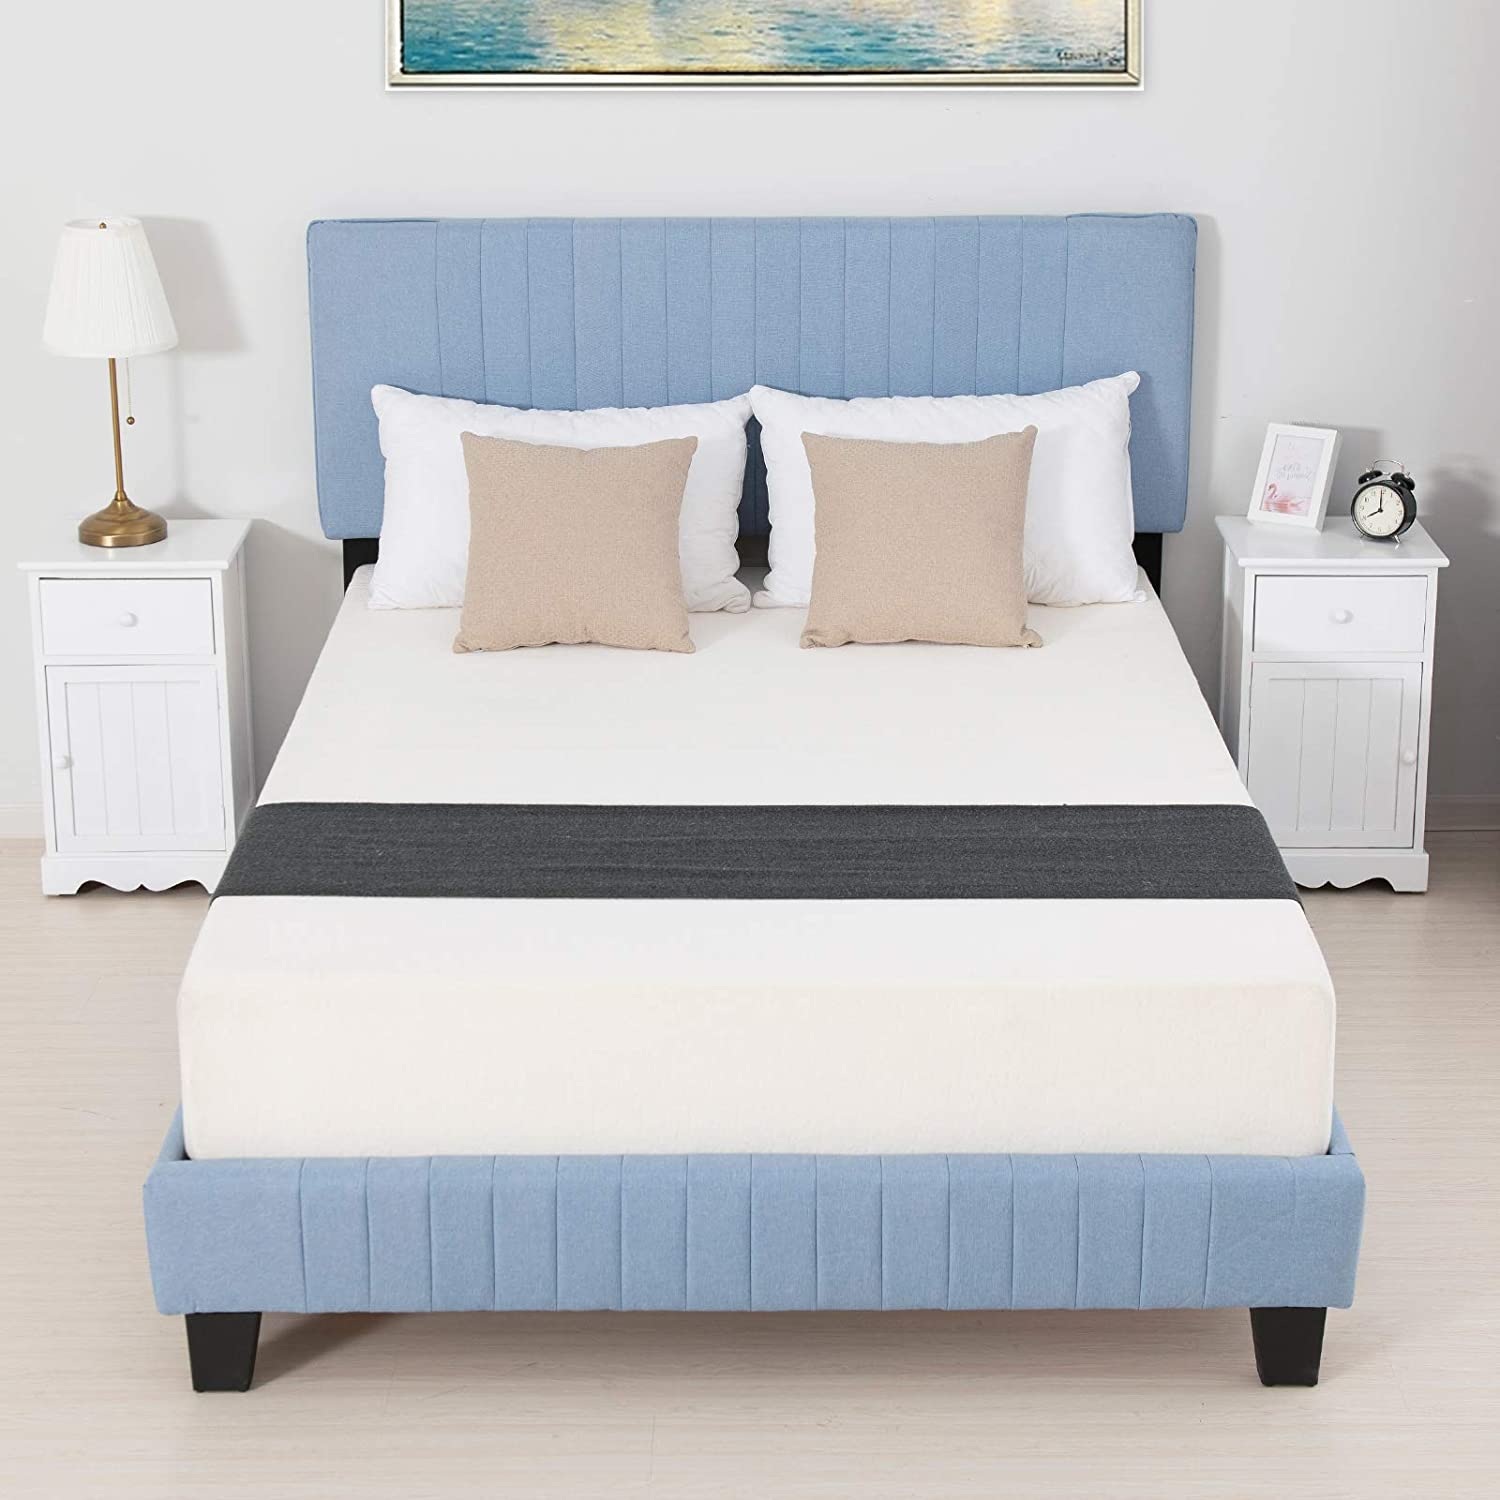 LAGRIMA Upholstered Linen Queen Bed Frame, Platform Bed with Vertical Striped Headboard and Metal Frame with Solid Wood Slat Support, No Box Spring Needed, Blue, Queen